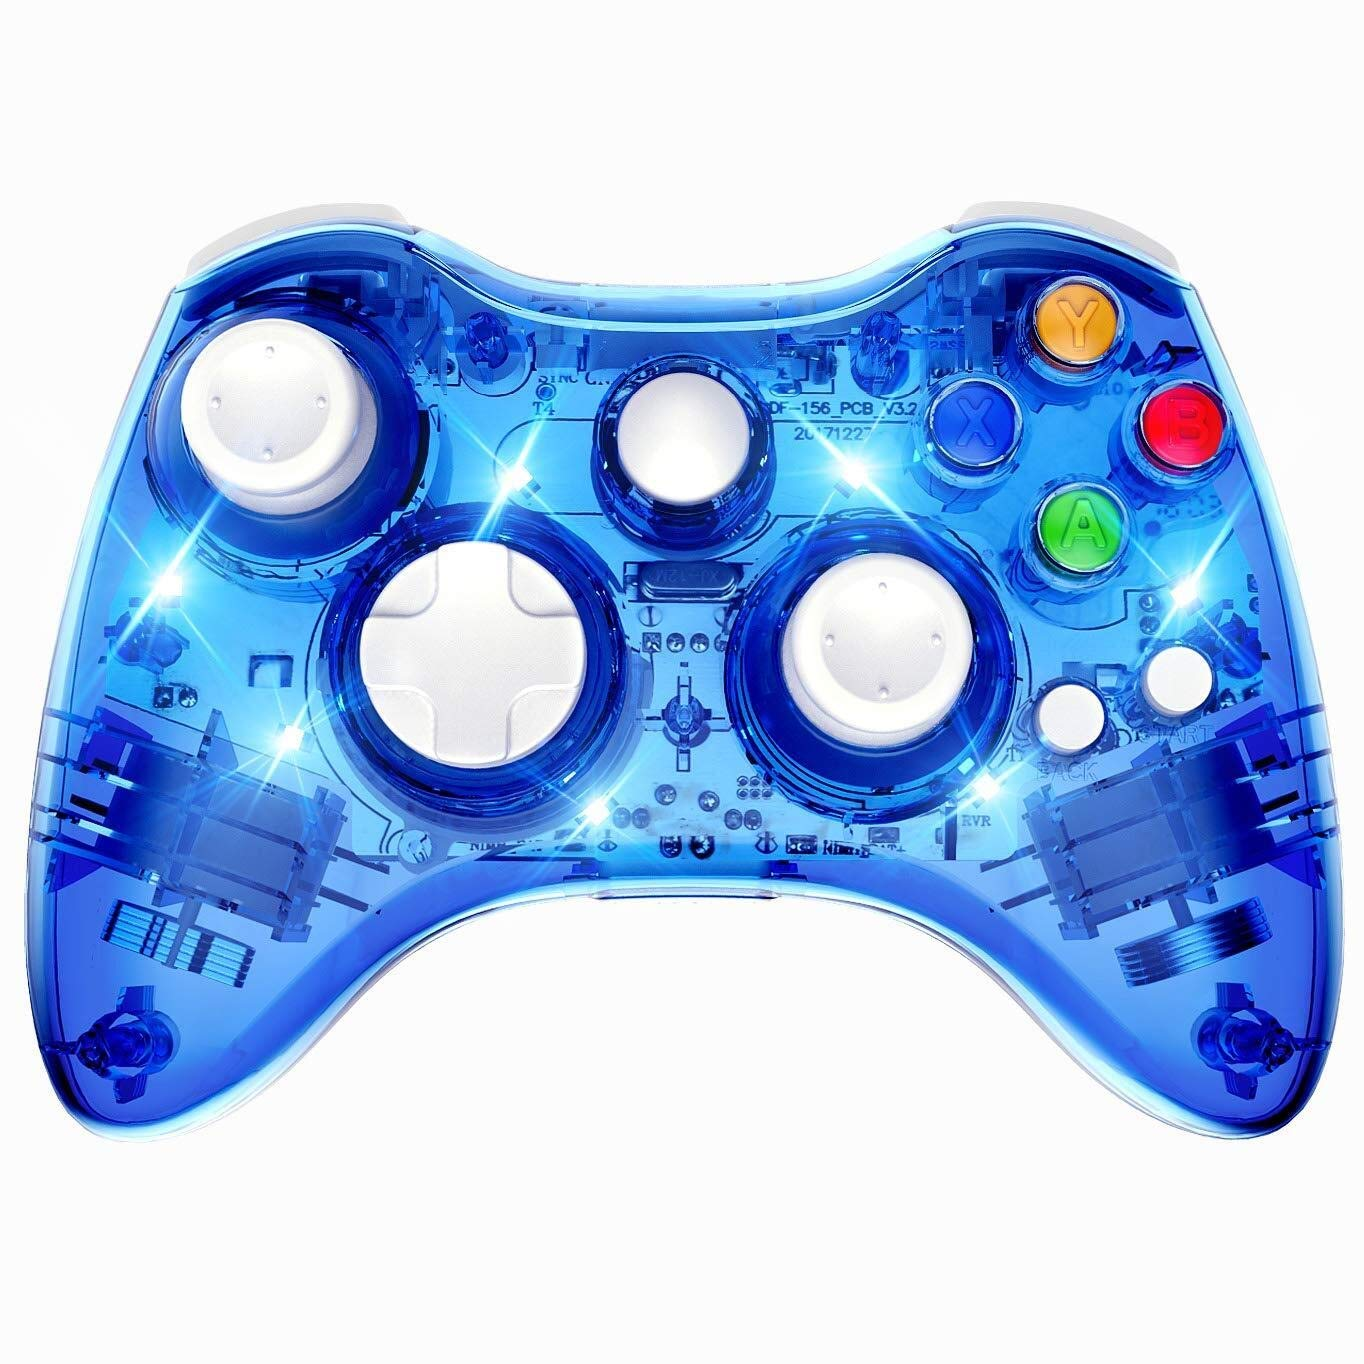 Xbox 360 Wireless Controller, Wireless Game Controller Gamepad Joystick, Transparent Shell, Suitable for Xbox 360 Console/PC Windows7/8/10 -Trasparent Colorfull LED Lights (Third-Party Product) by GAME JIANG